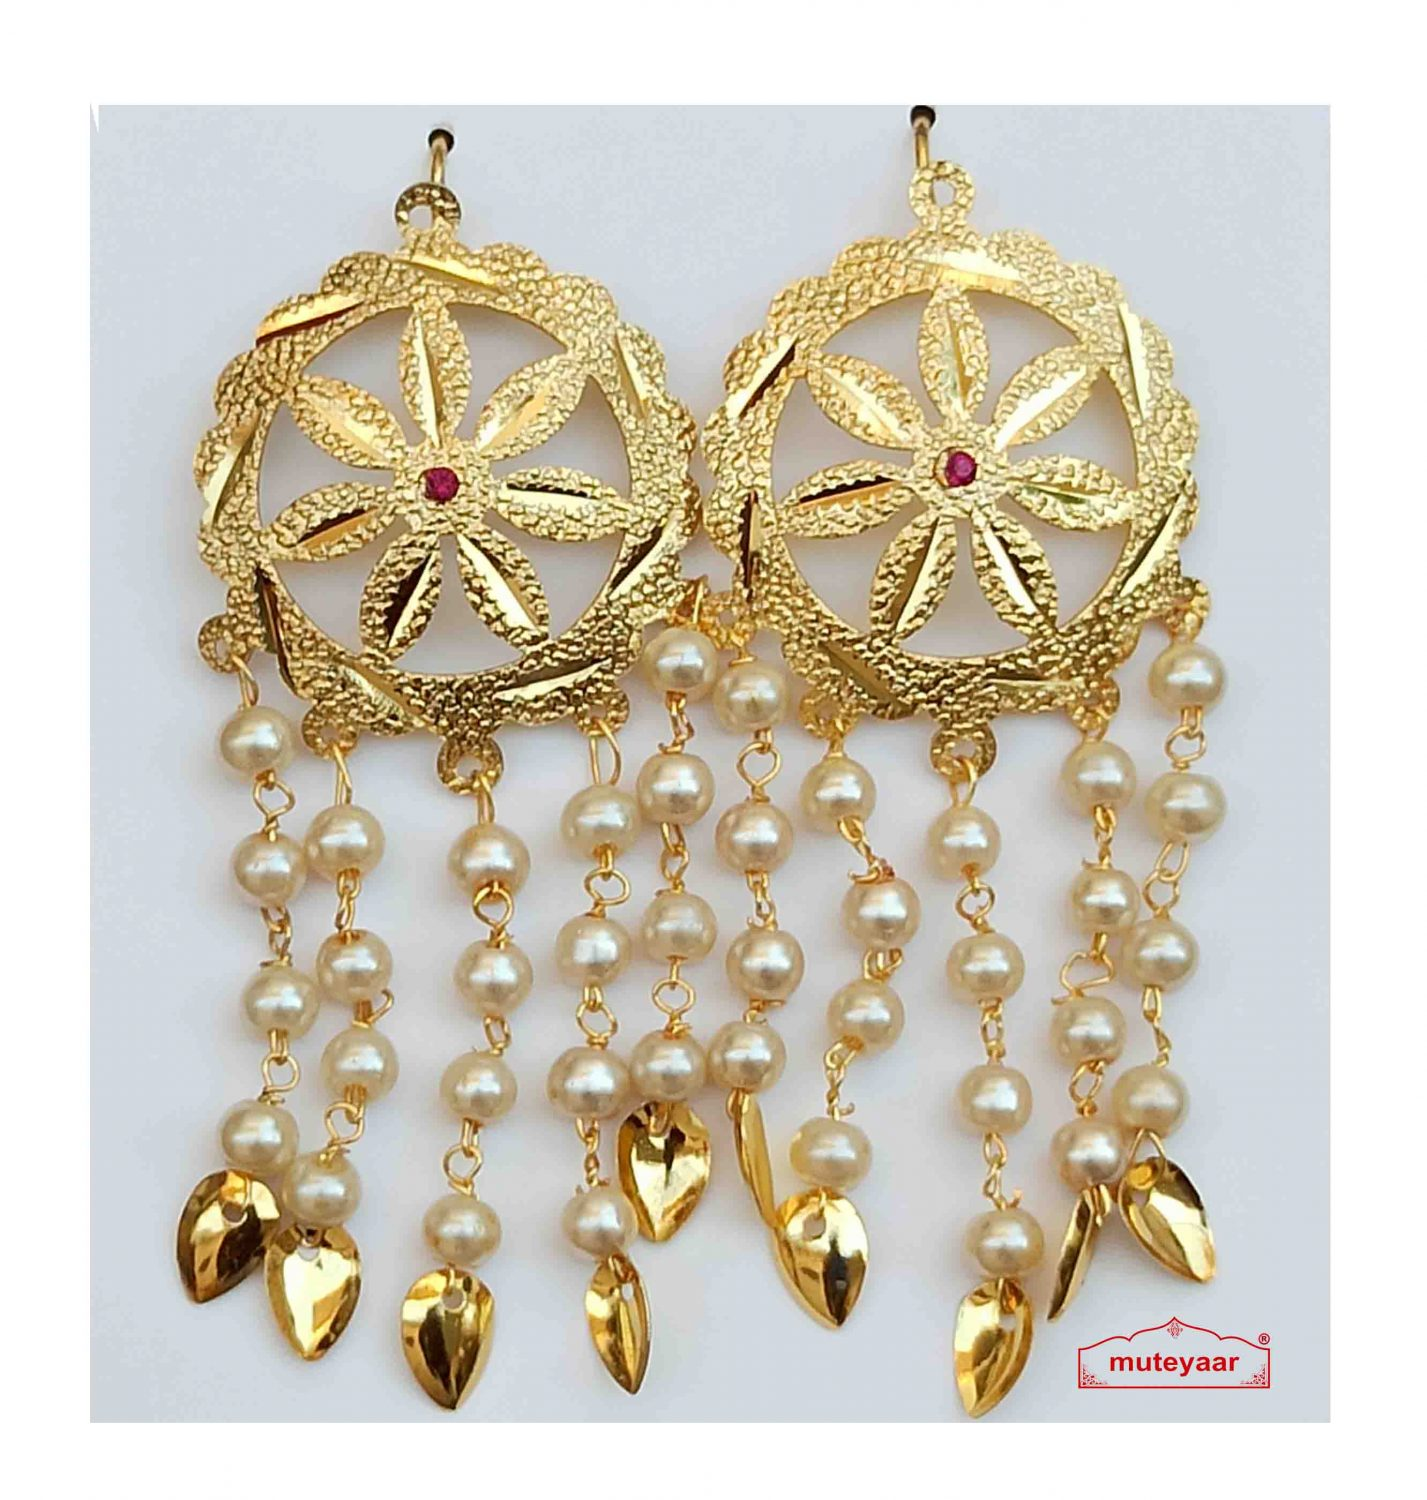 Punjabi Jhallar Earrings with Golden Polish J0542 1